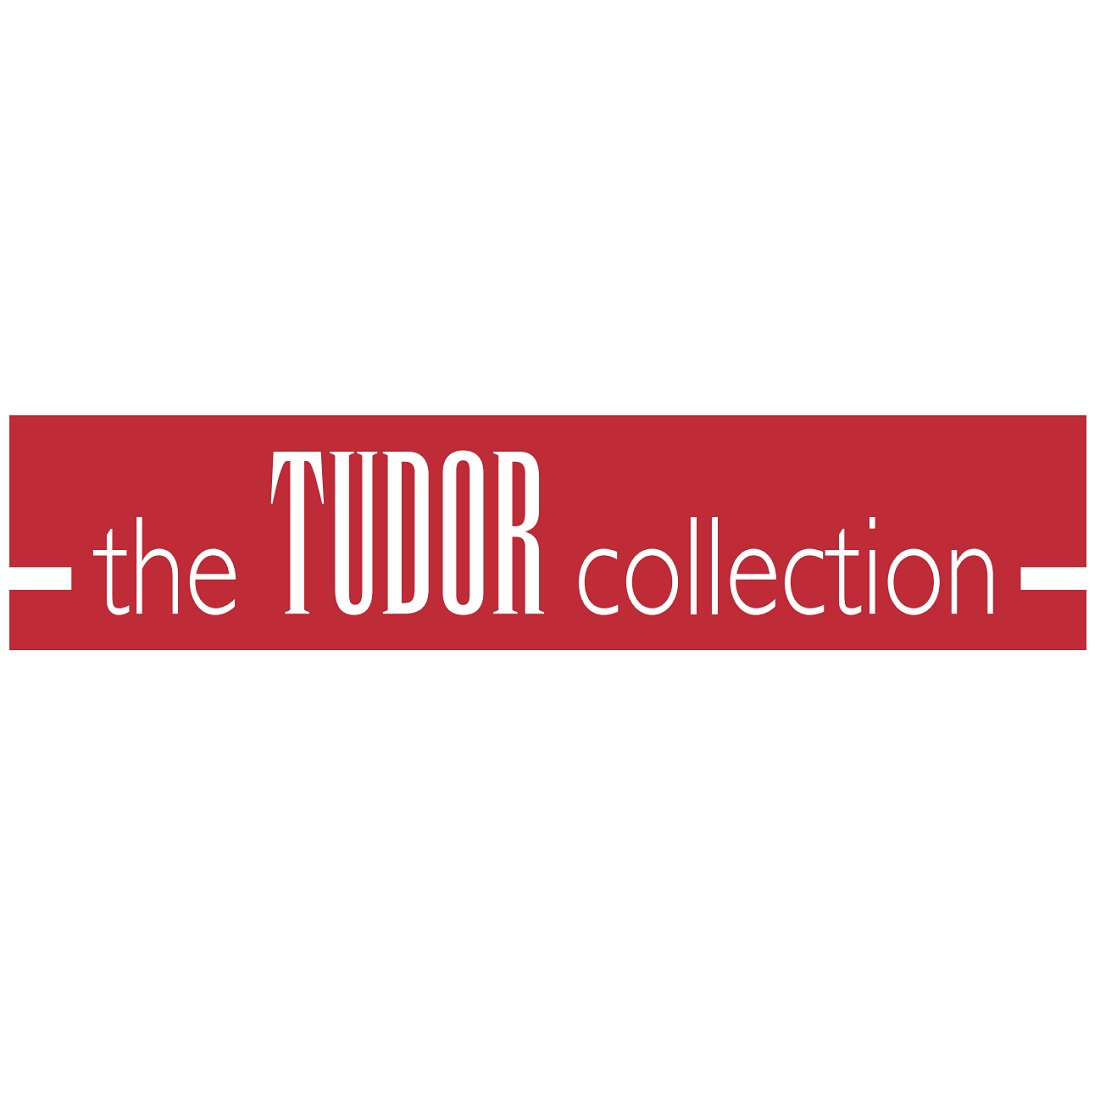 Tudor Collection